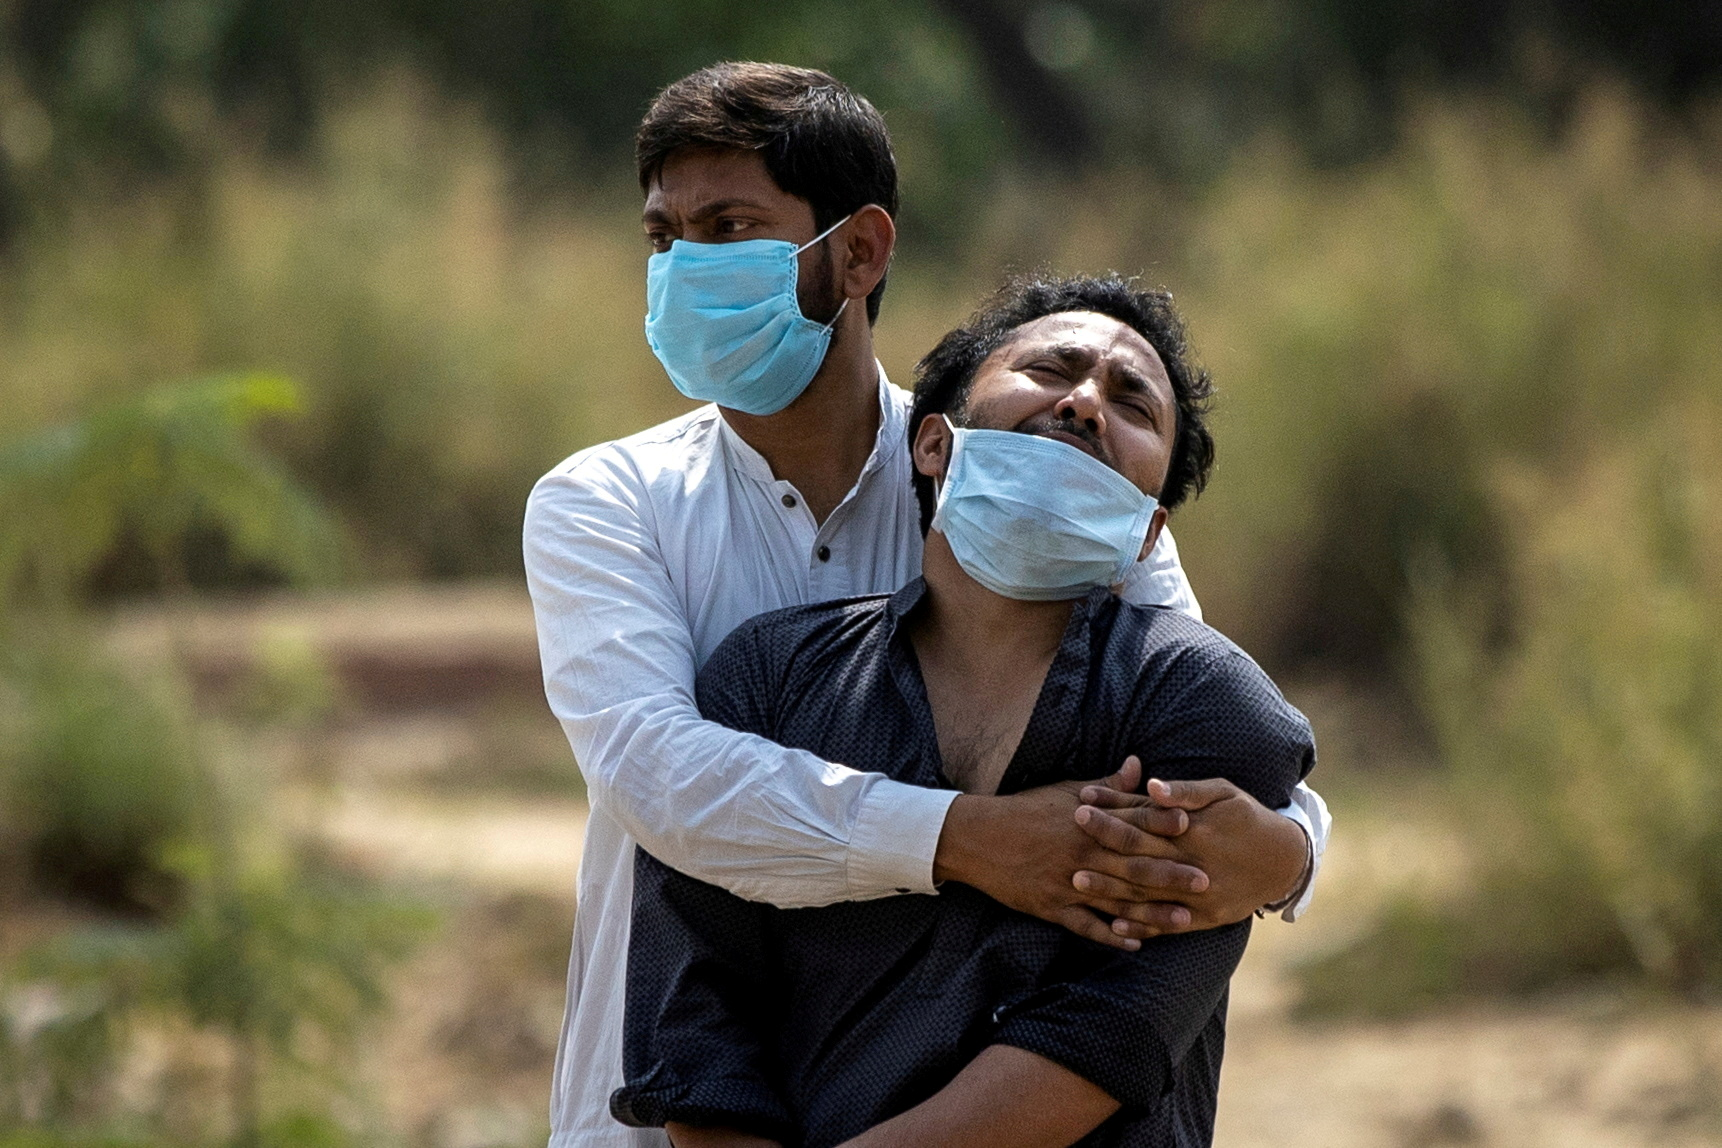 A man is consoled by his relative as he sees the body of his father, who died from complications related to the coronavirus disease (COVID-19), before his burial at a graveyard in New Delhi, India, April 16, 2021. REUTERS/Danish Siddiqui/File Photo